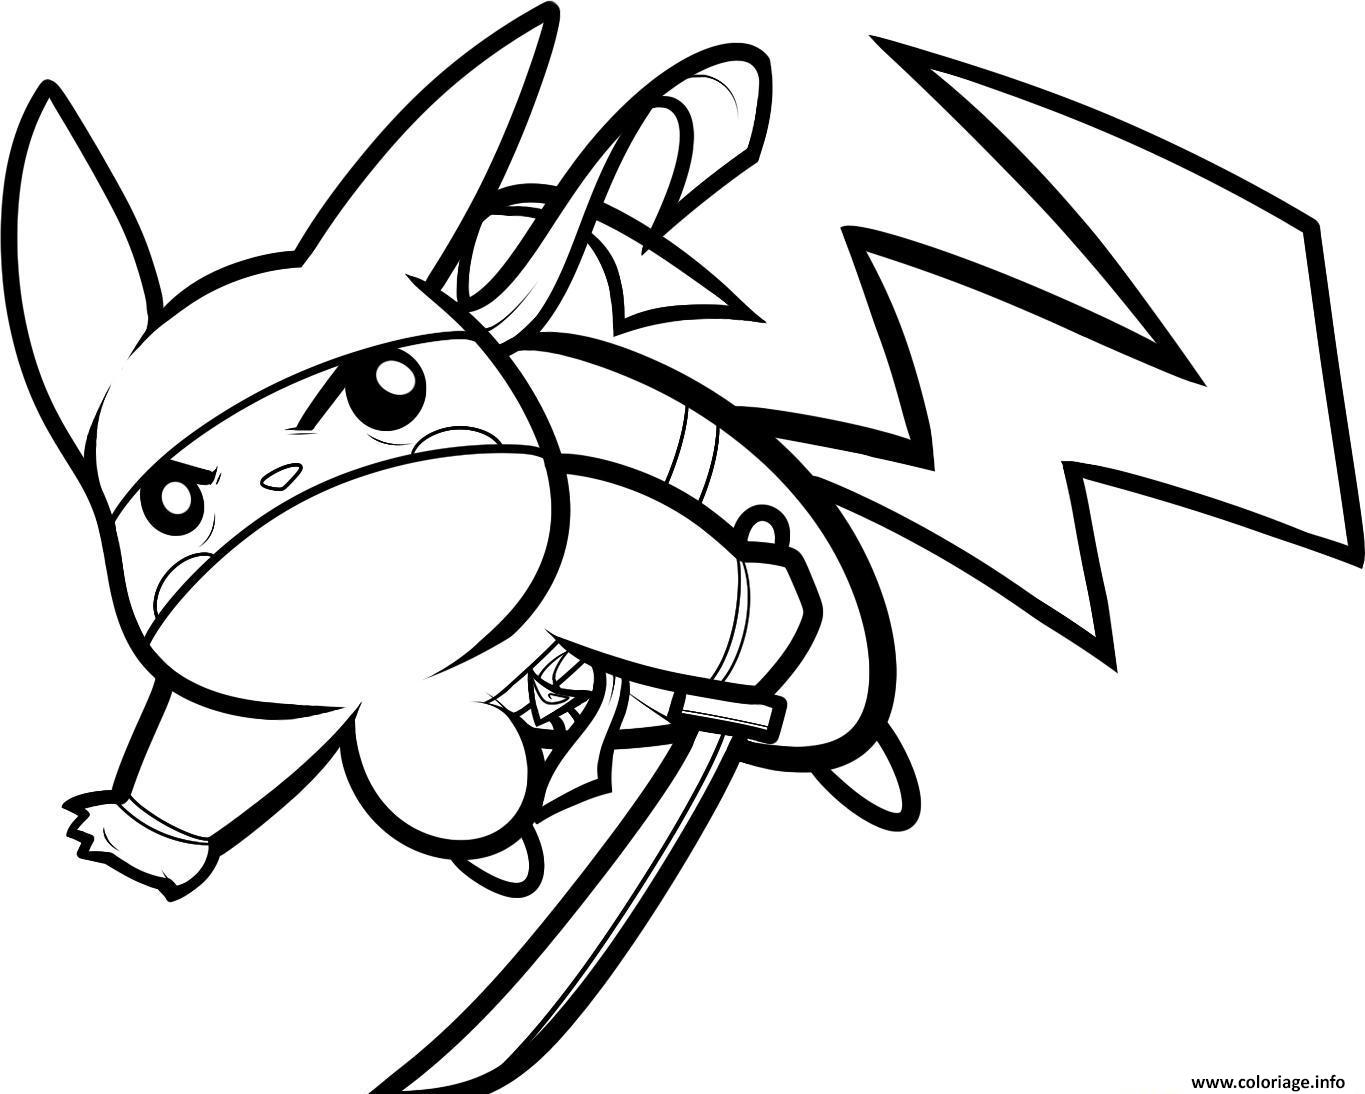 Coloriage Pikachu En Mode Ninja Pokemon Dessin